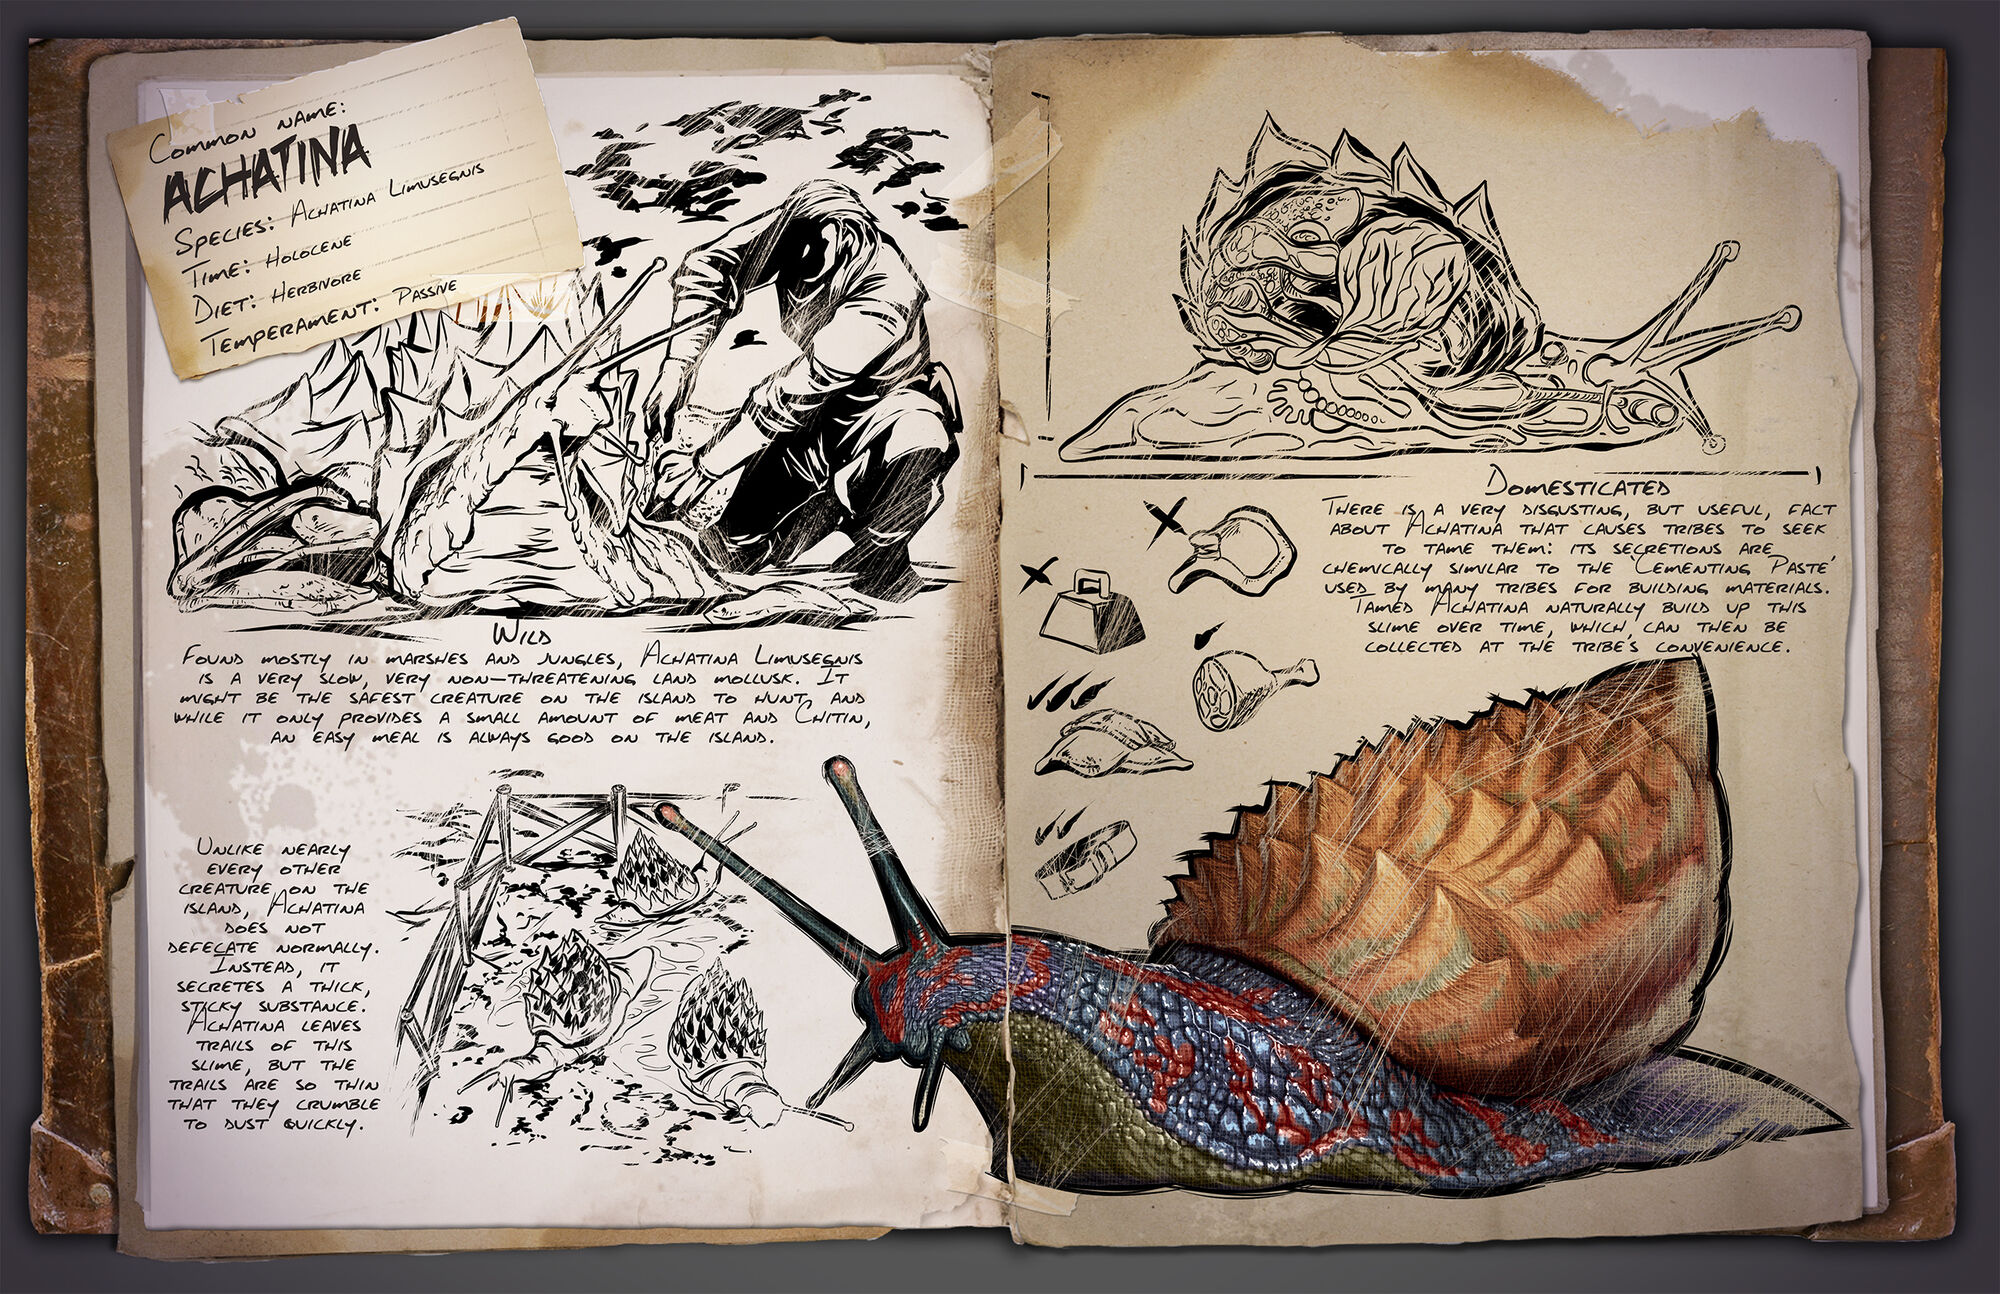 Achatina | ARK: Survival Evolved Wiki | FANDOM powered by Wikia